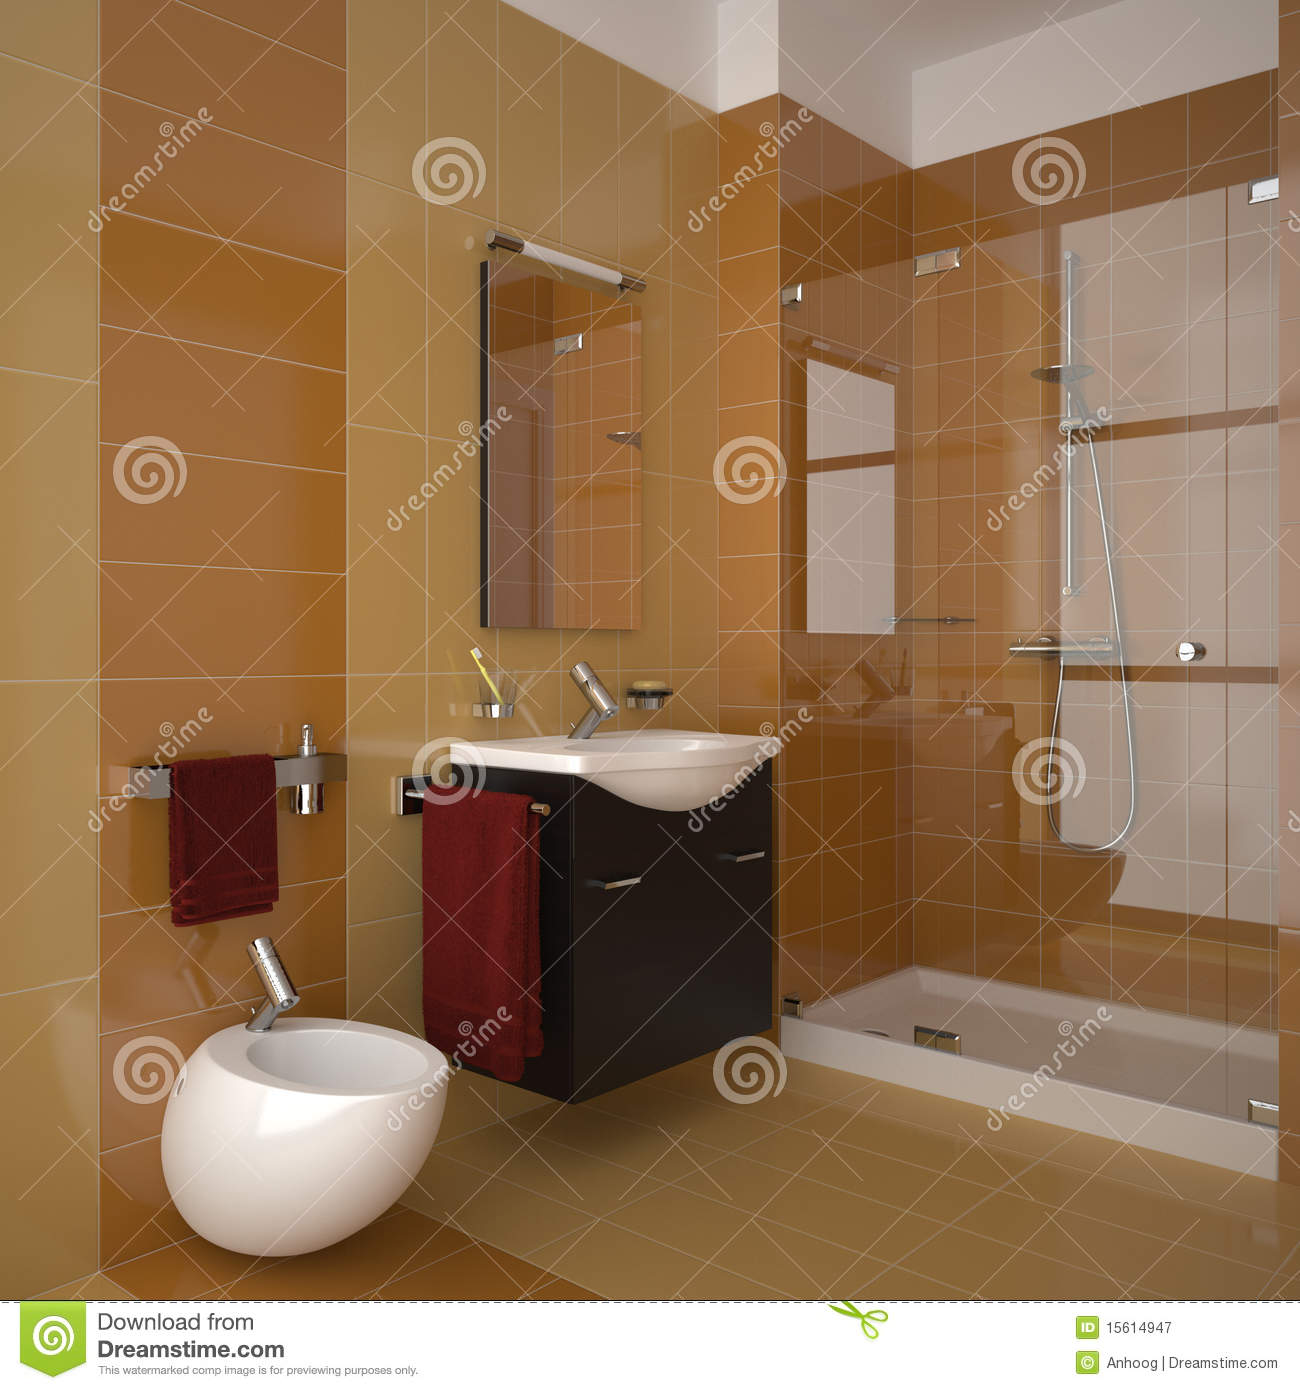 orange badezimmer stock abbildung illustration von marmor